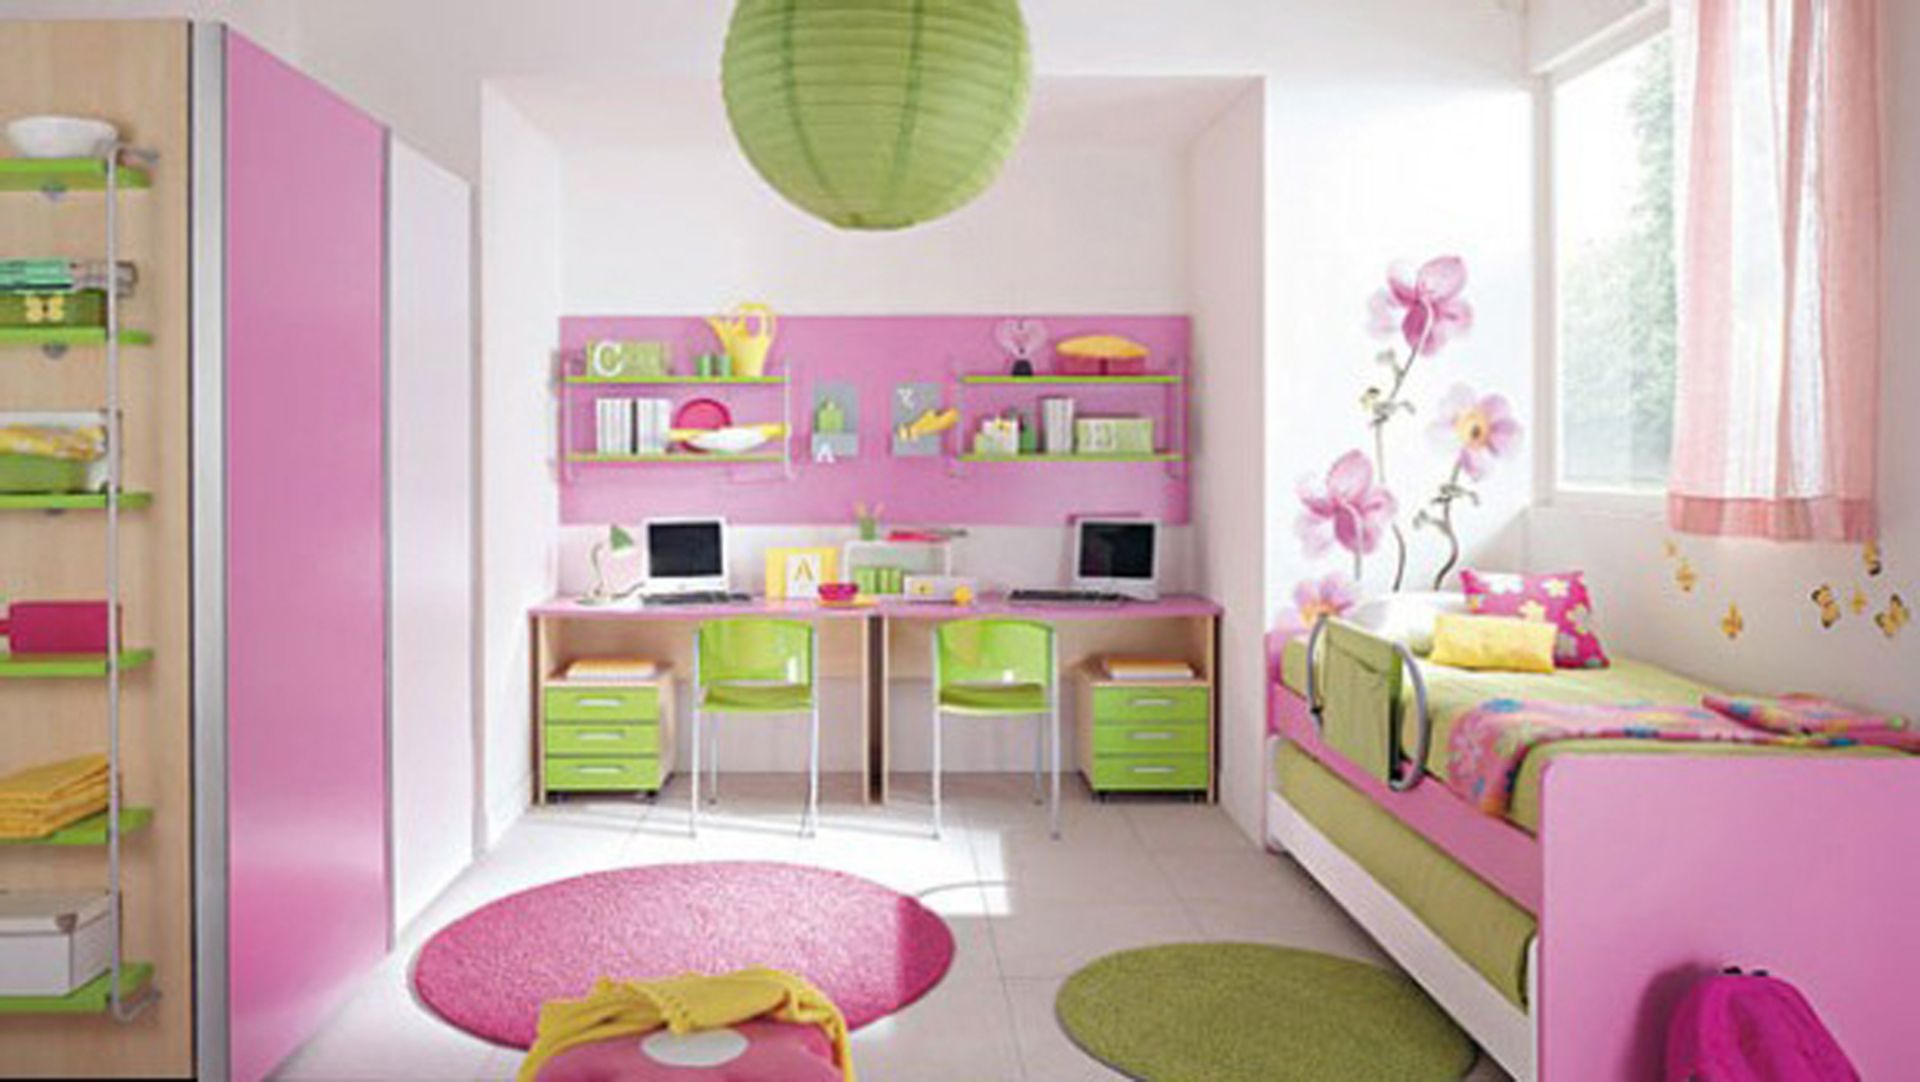 KIDS ROOMS | New Hd Template İmages